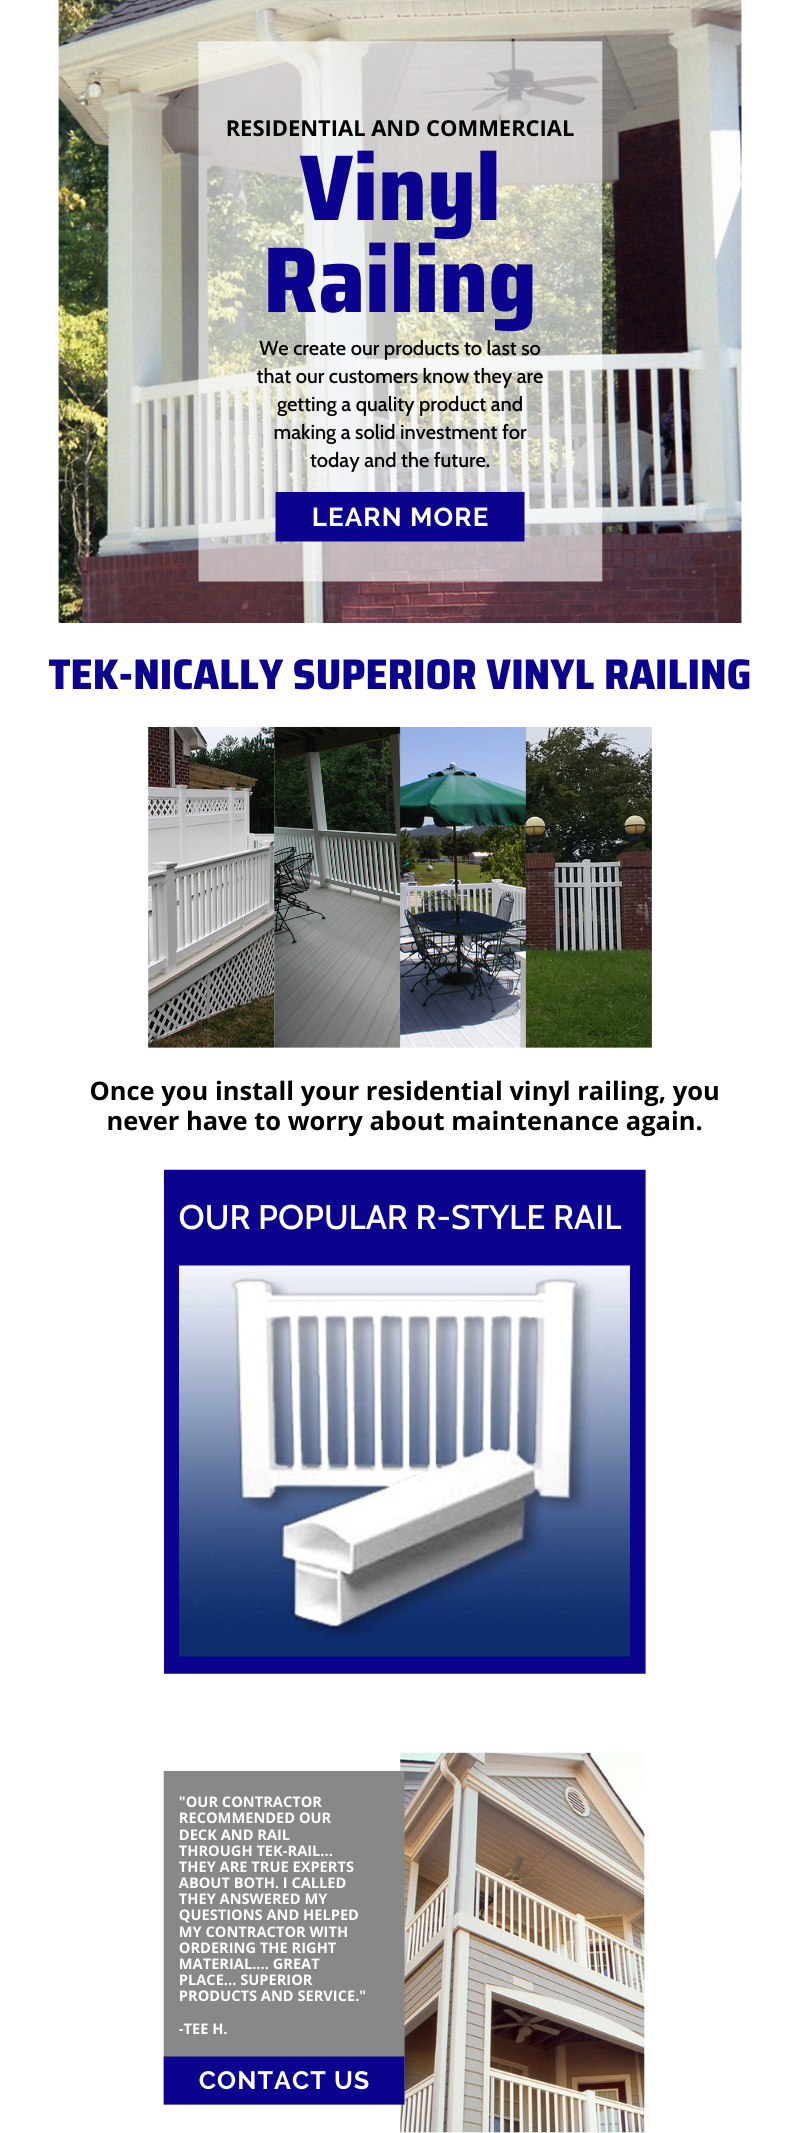 Residential and Commercial Vinyl Railing 1